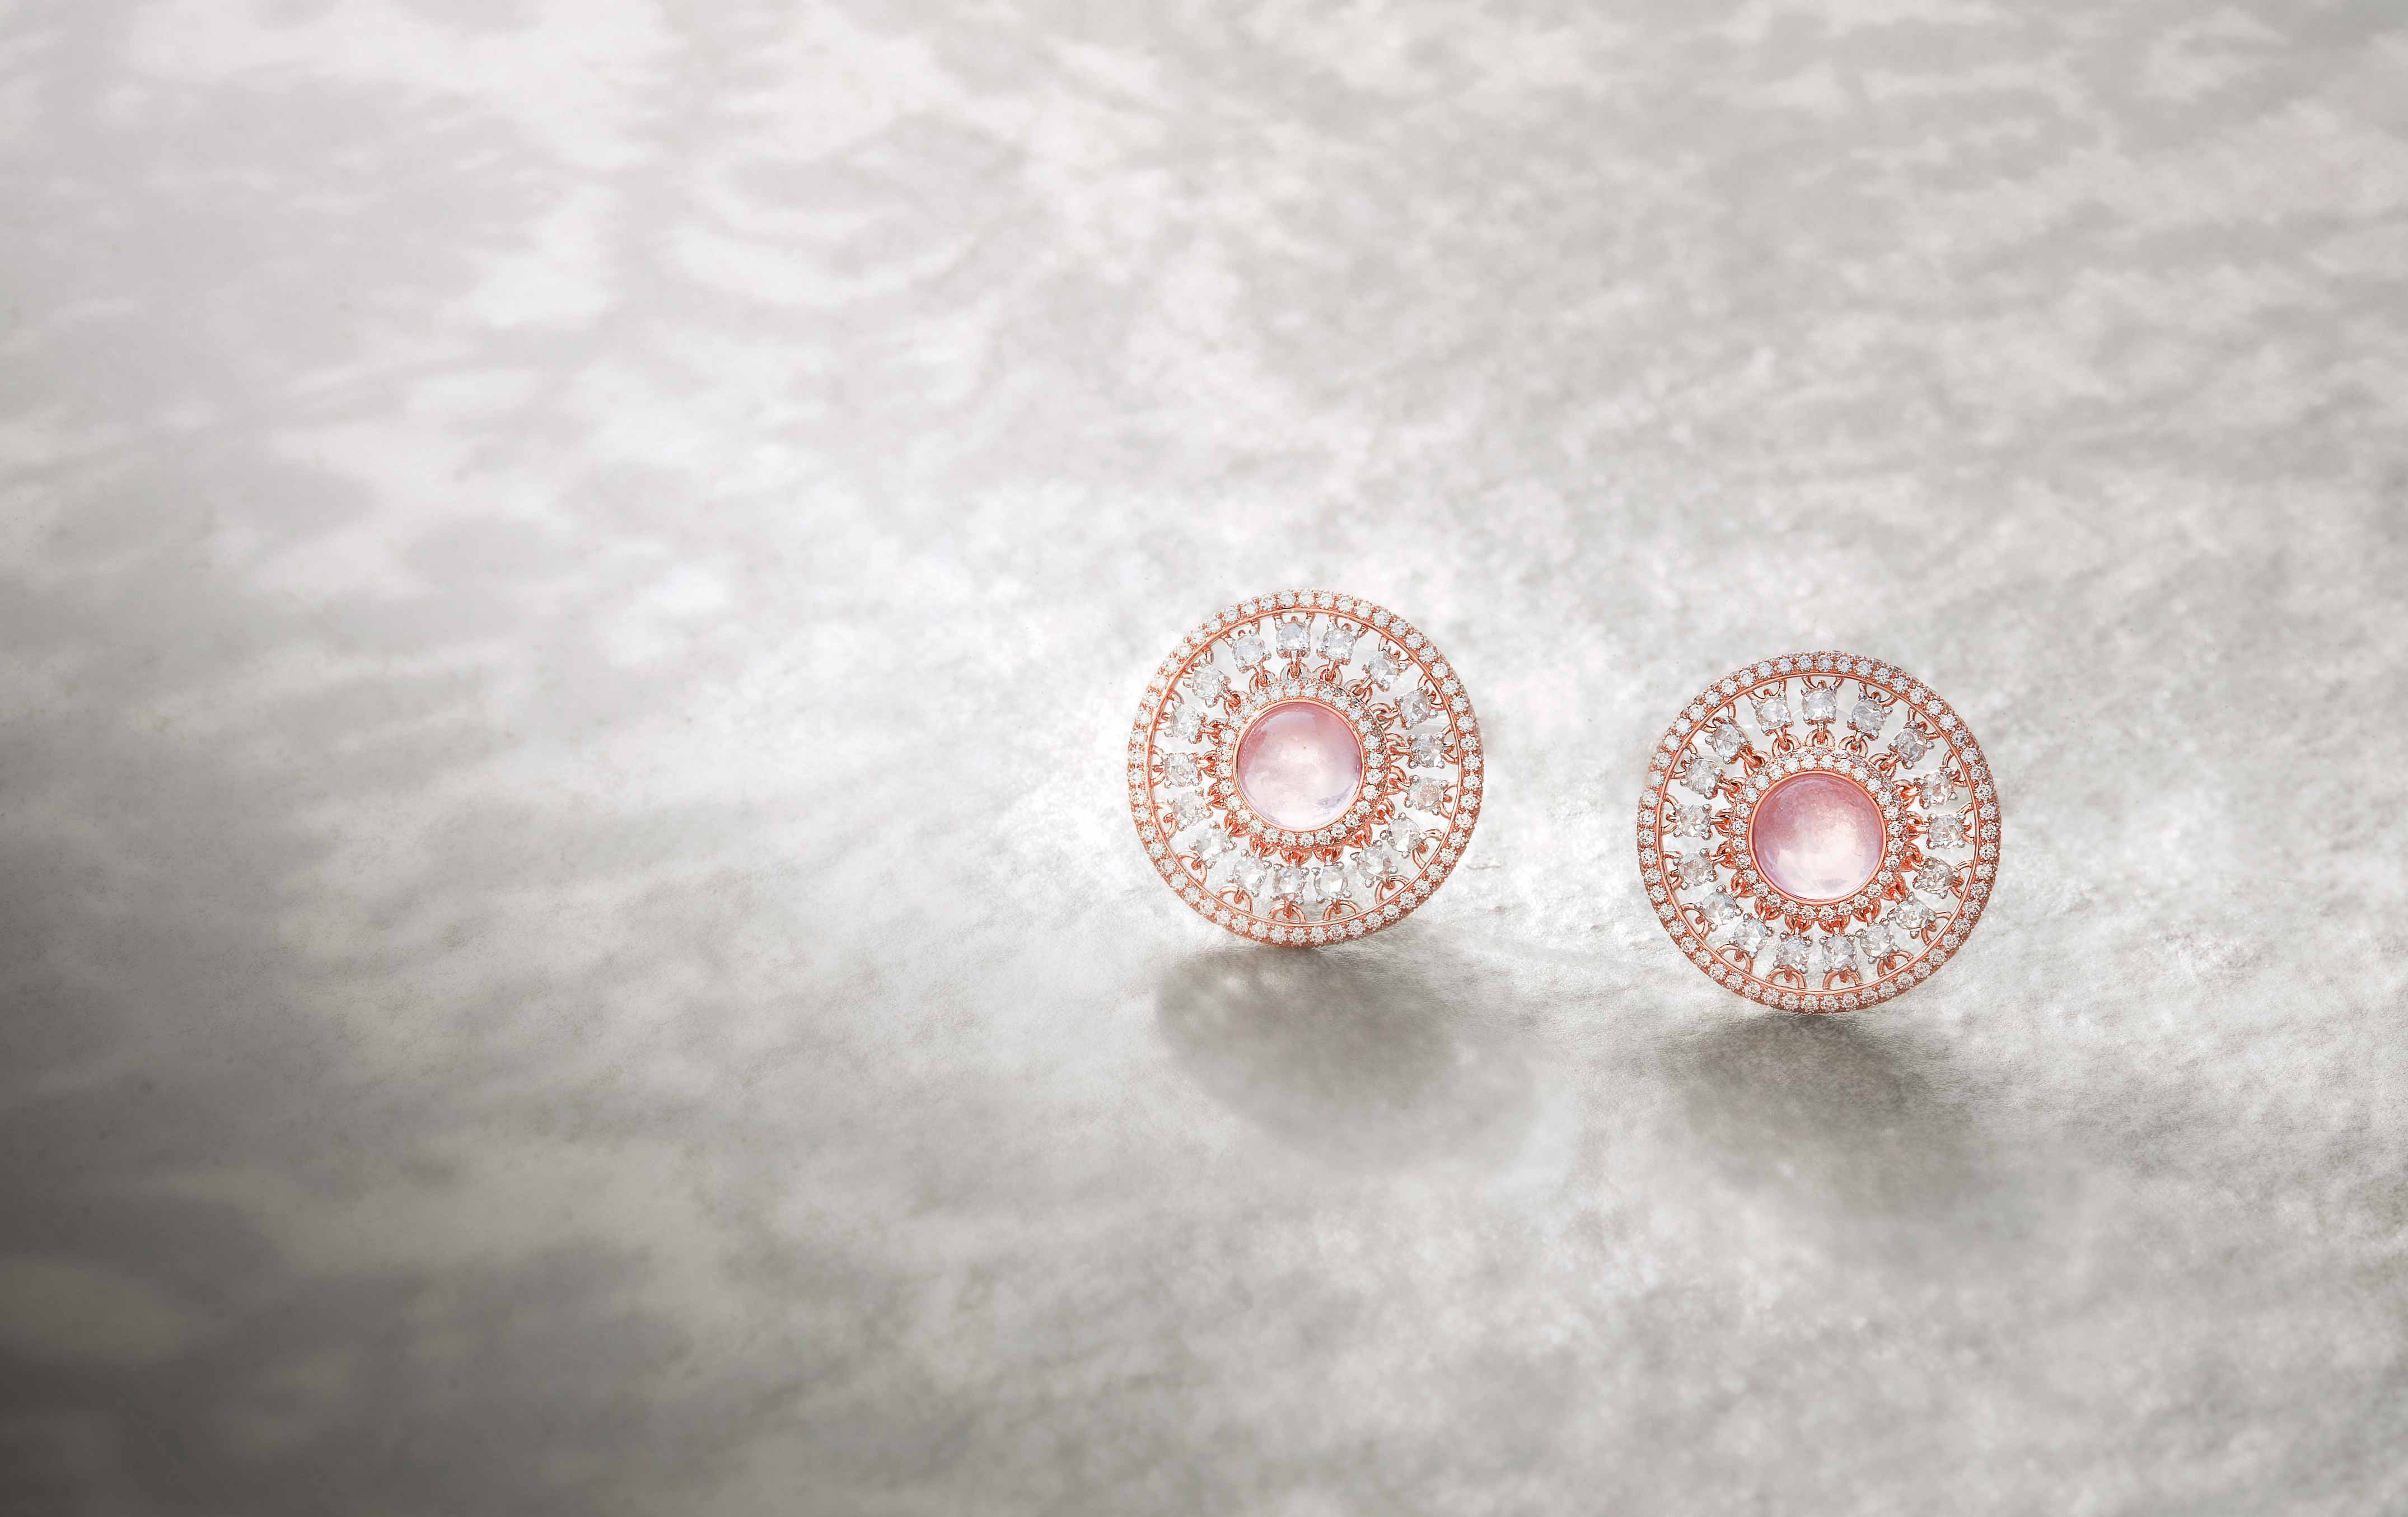 The jewels evoke nostalgia while remaining rooted in the present.